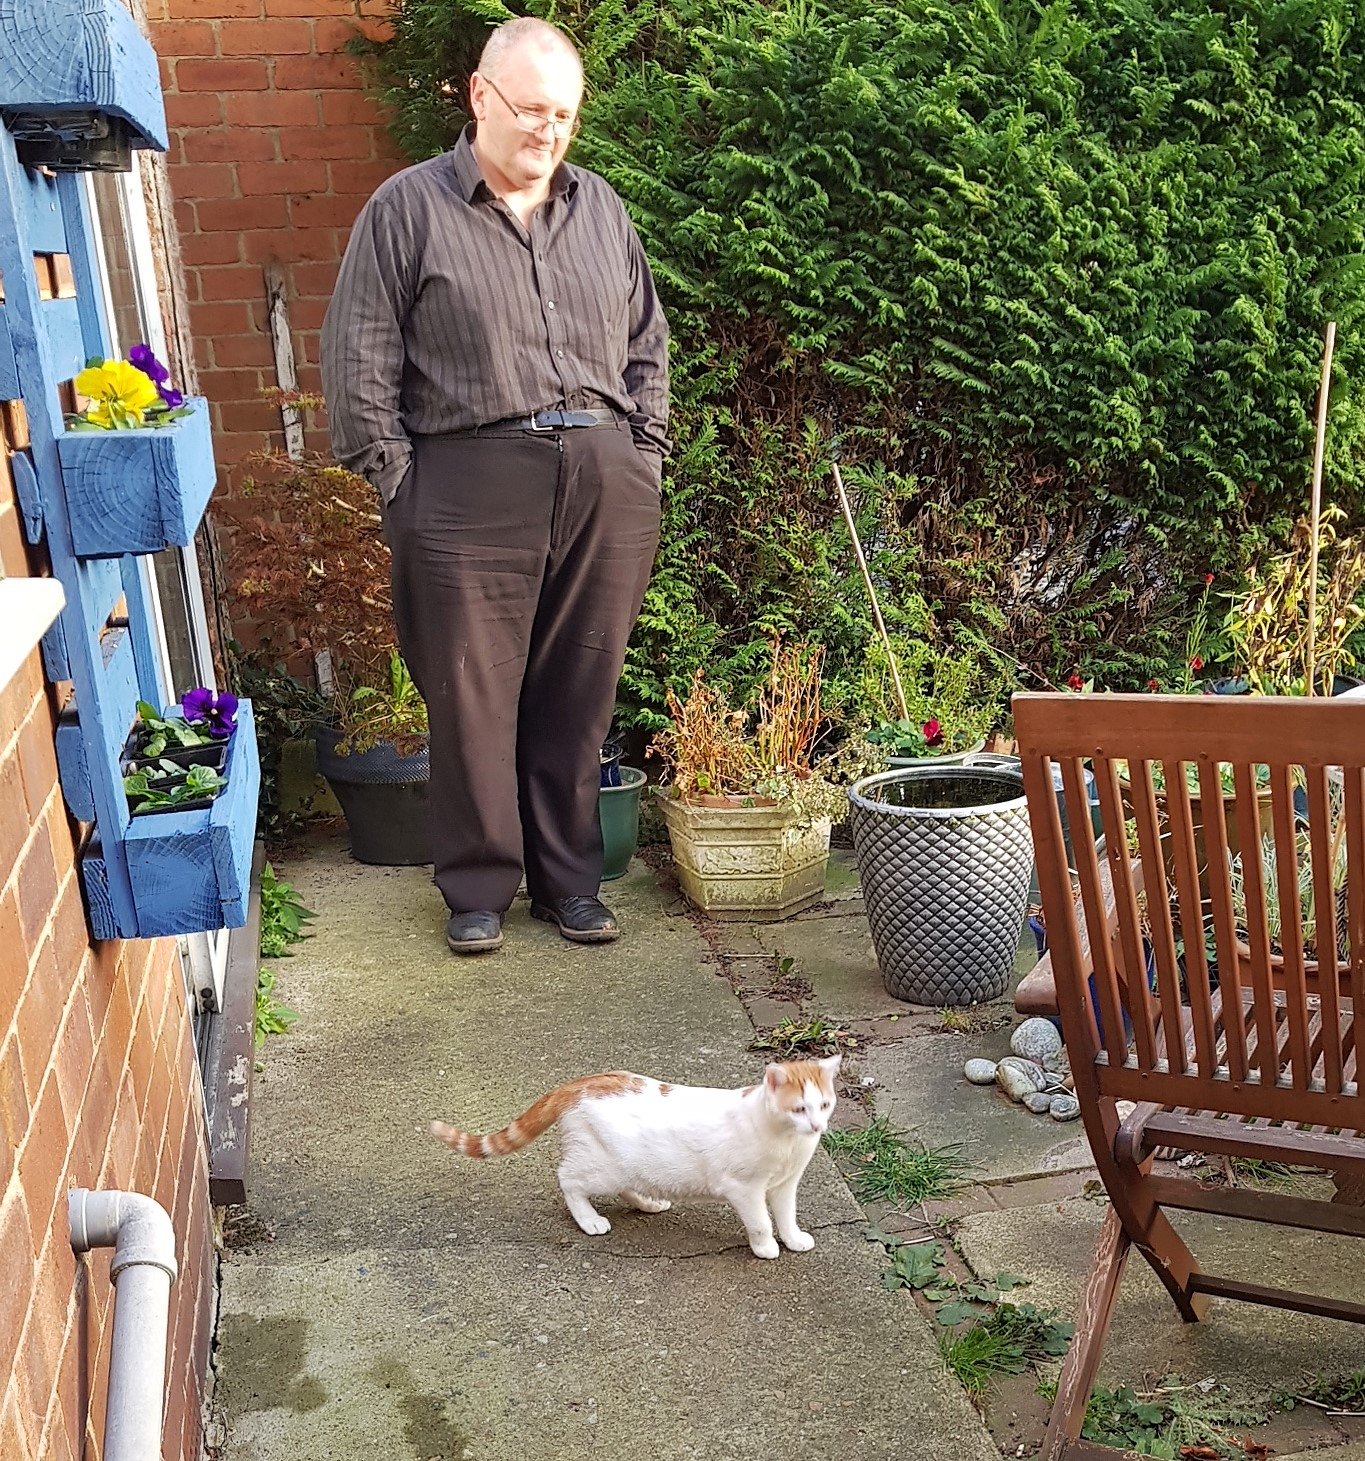 Man dressed in black watching a young white and ginger cat on a patio